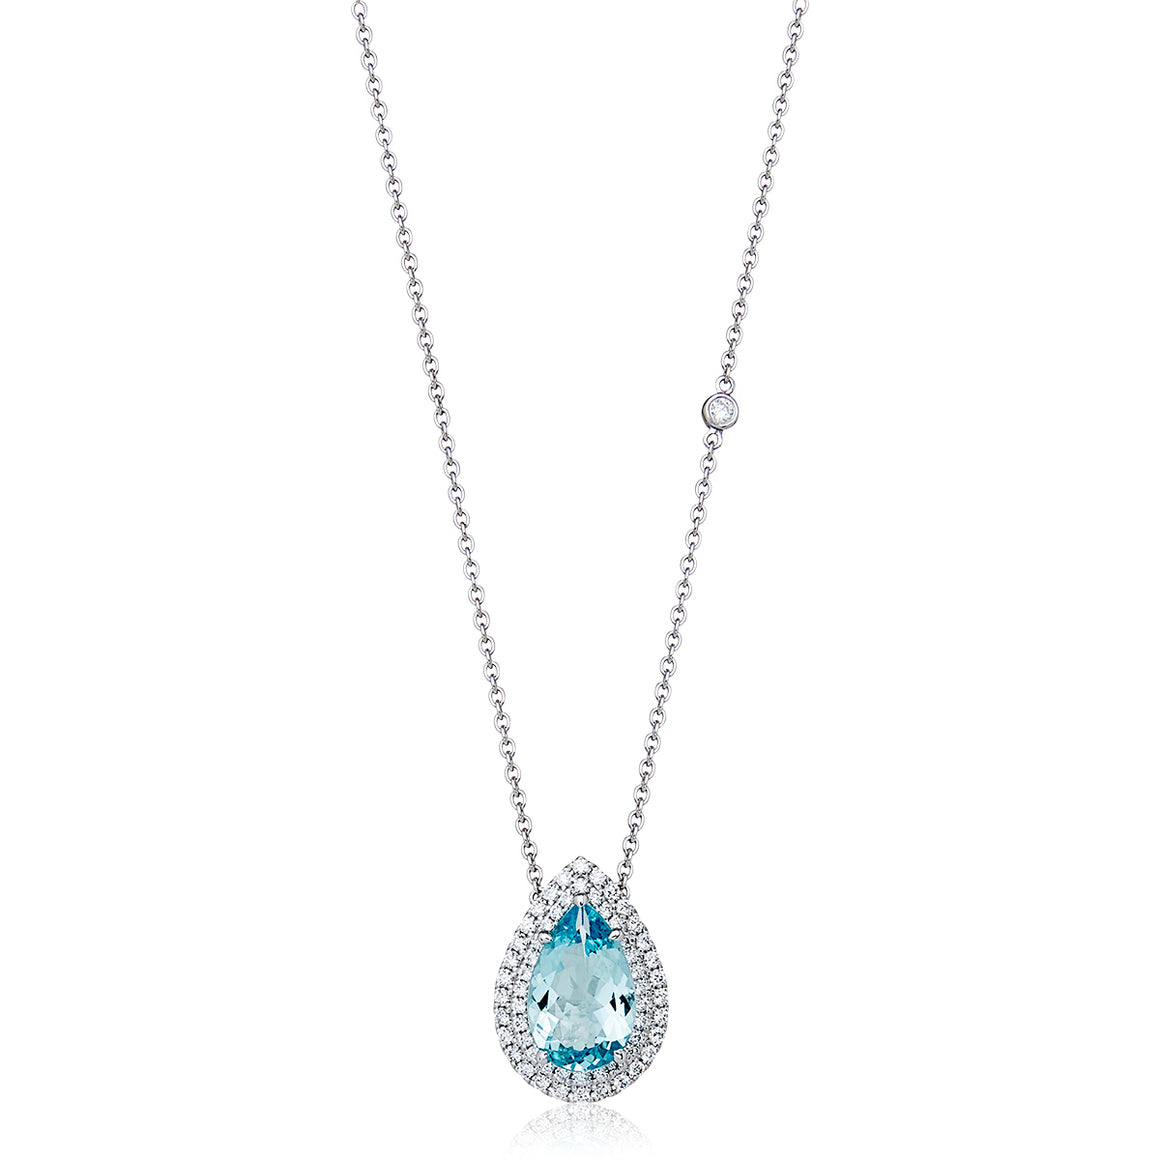 Aquamarine & Diamond 'Alarna' Pear Shaped Necklace - Gemma Stone  ABN:51 621 127 866